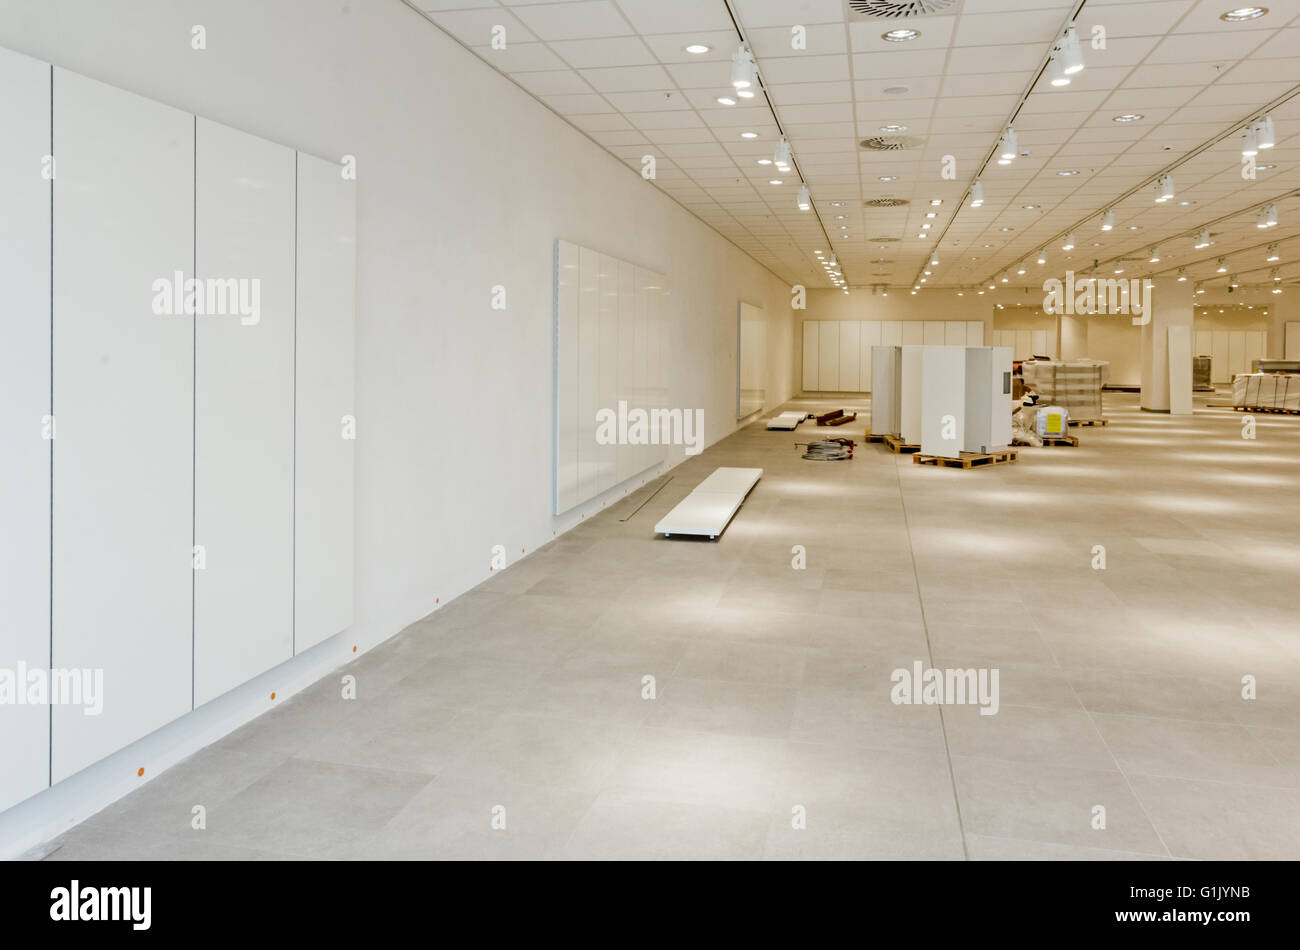 Furnishing equipment is on the floor for white room with ceiling light. - Stock Image